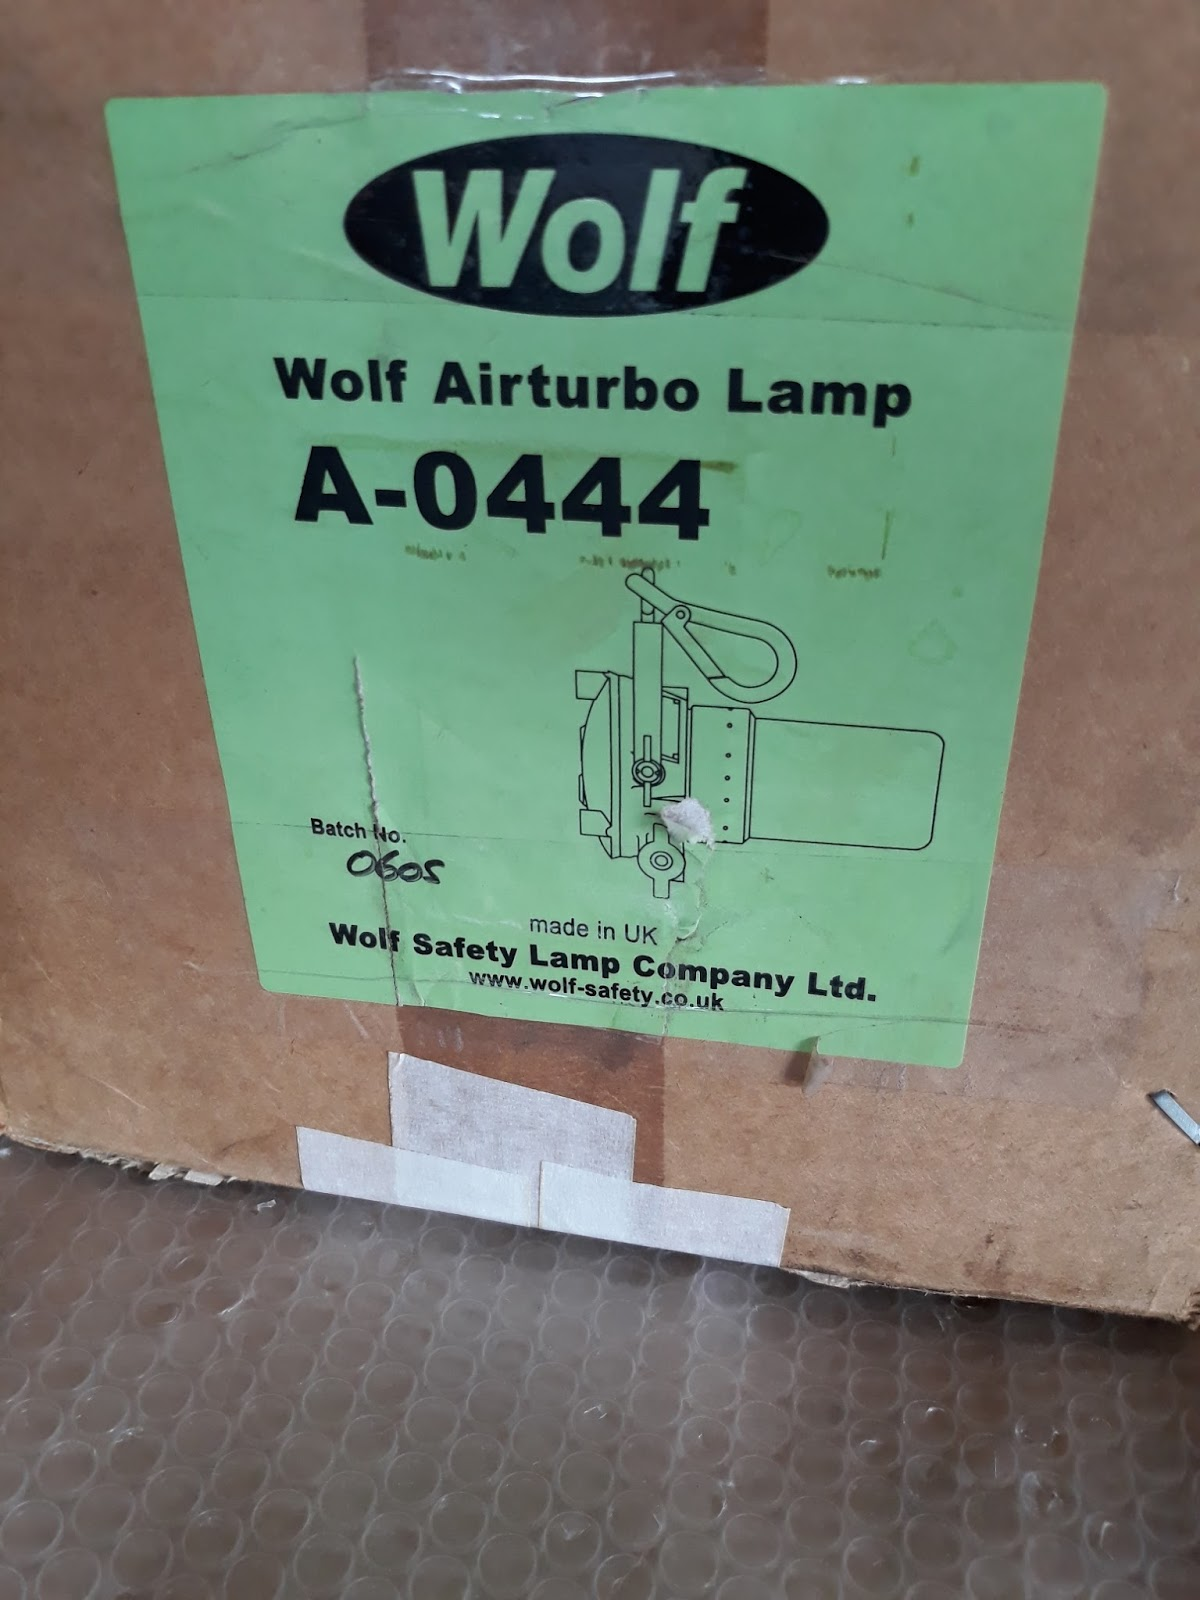 aeliya marine new resized the safety type wolf approval ltd a co bulb valt lamp watt pvt no tech ref airturbo